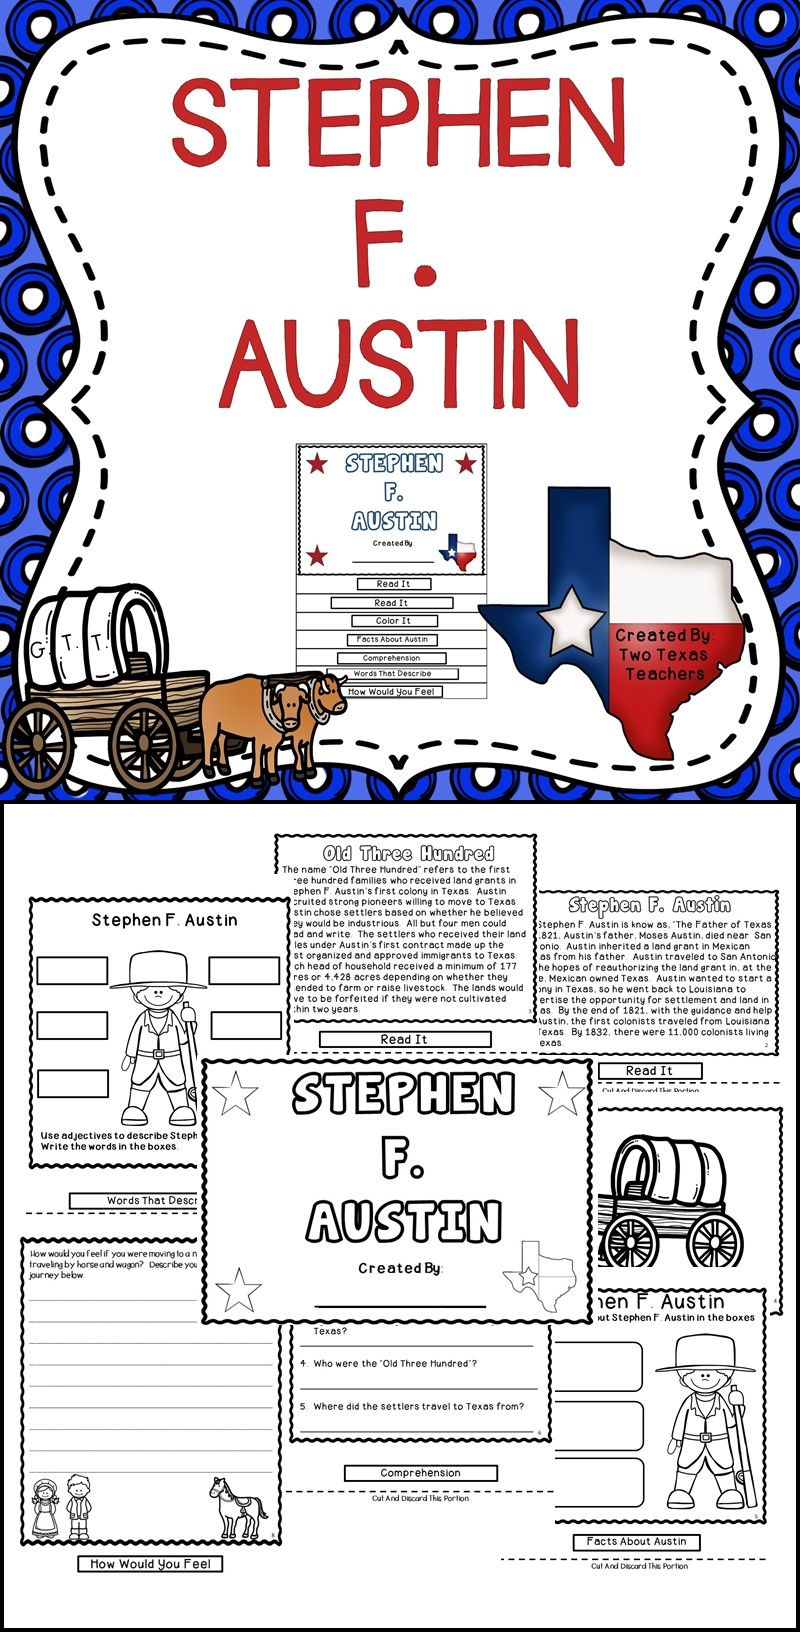 worksheet Stephen F Austin Facts stephen f austin texas history we flip books and history